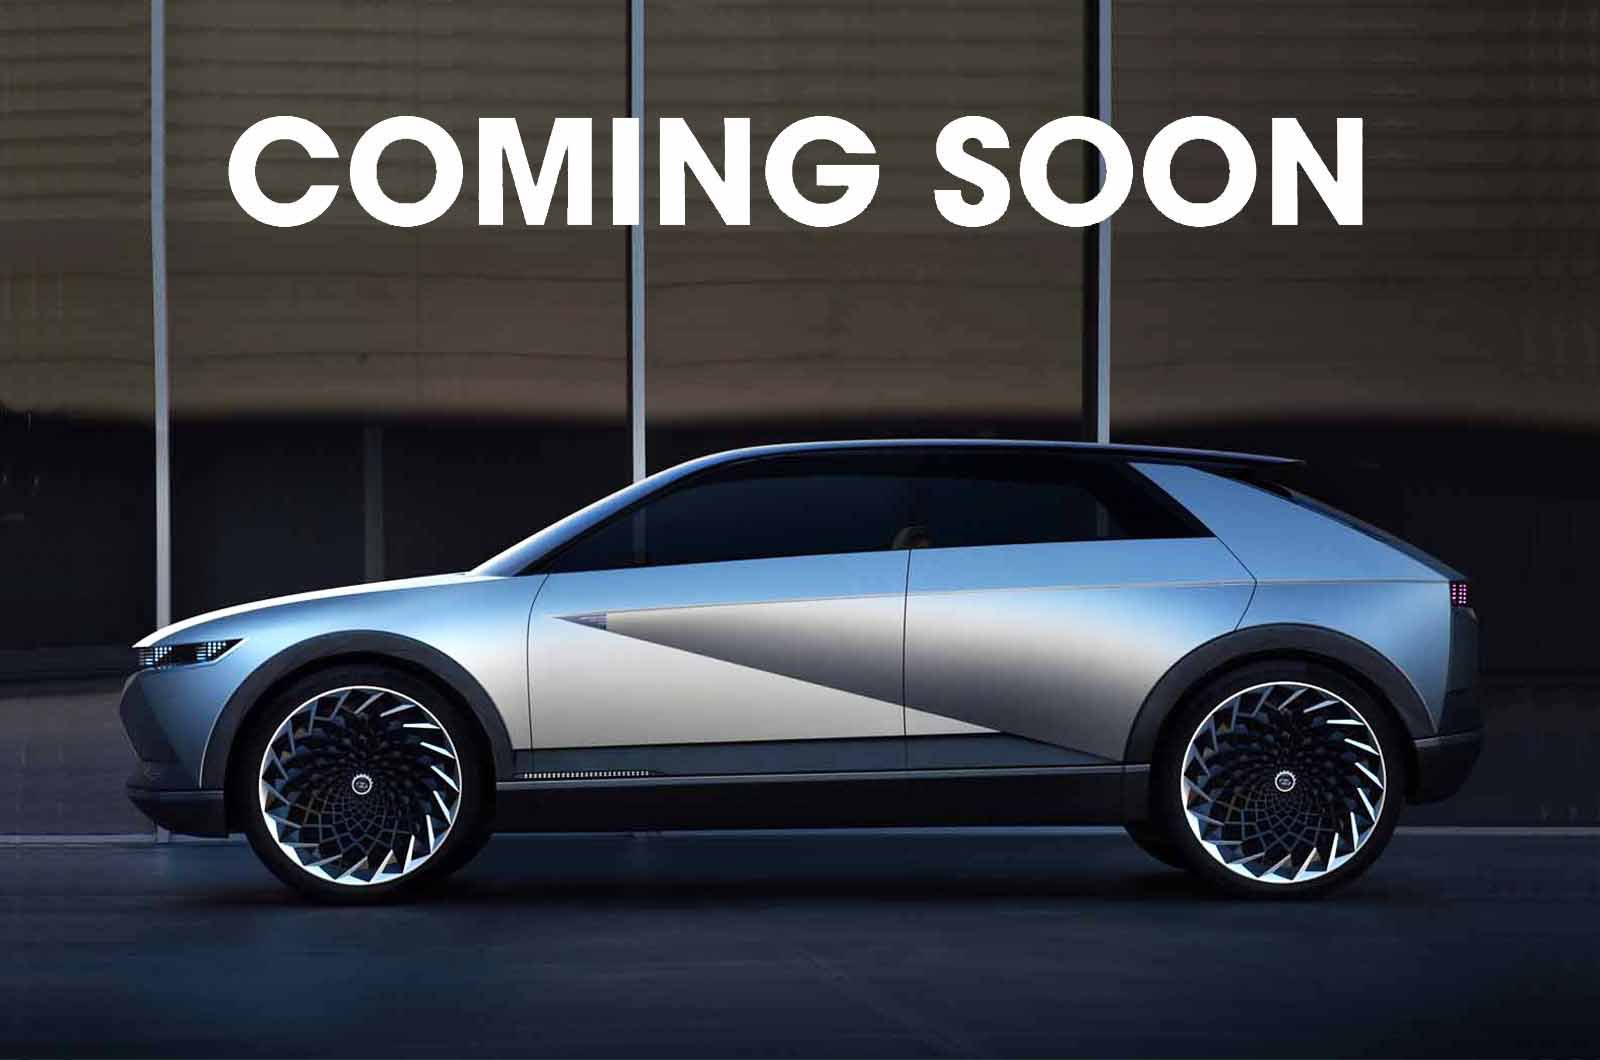 Coming soon: Hyundai 45